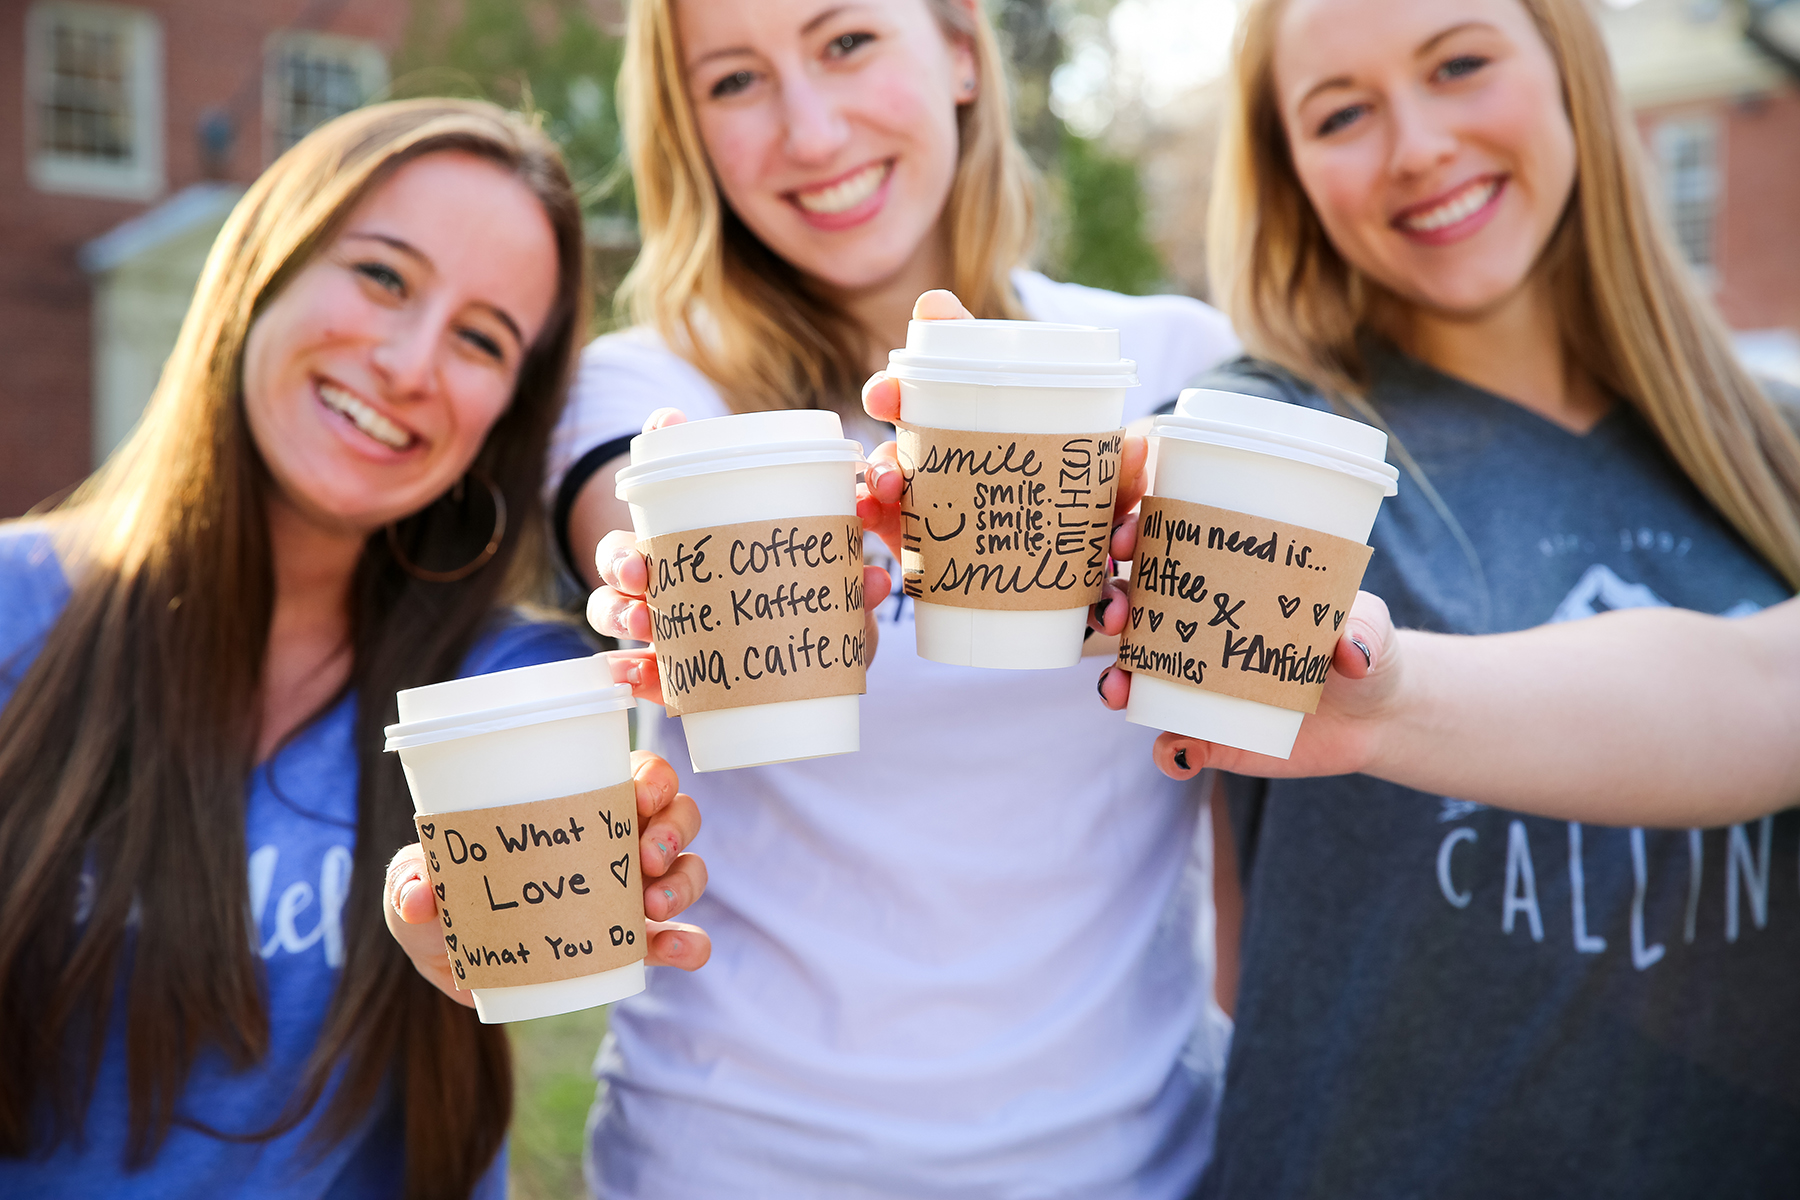 three smiling girls holding to go coffee cups with compliments written on them